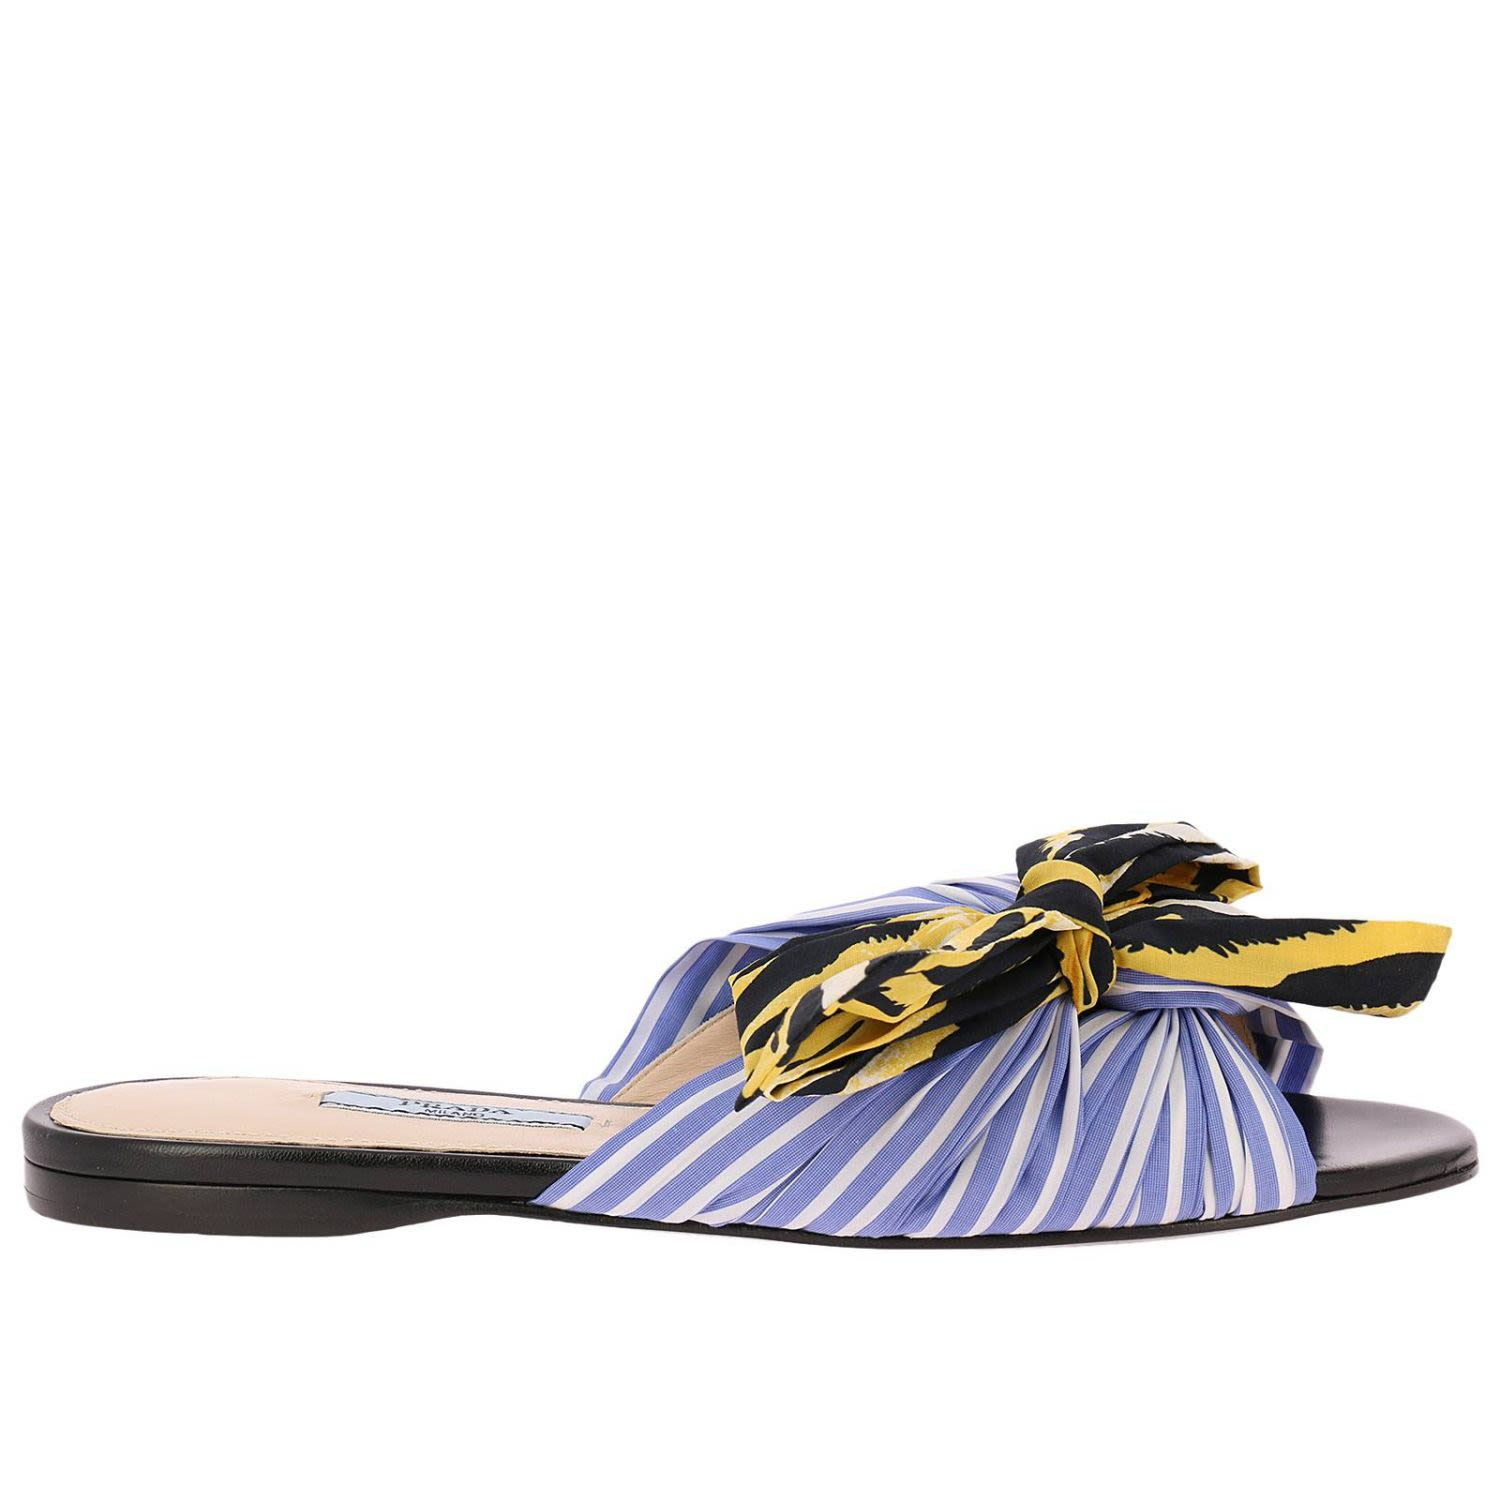 bbba825e4dcc ... 50% off prada flat sandals shoes women prada gnawed blue 89602 85292